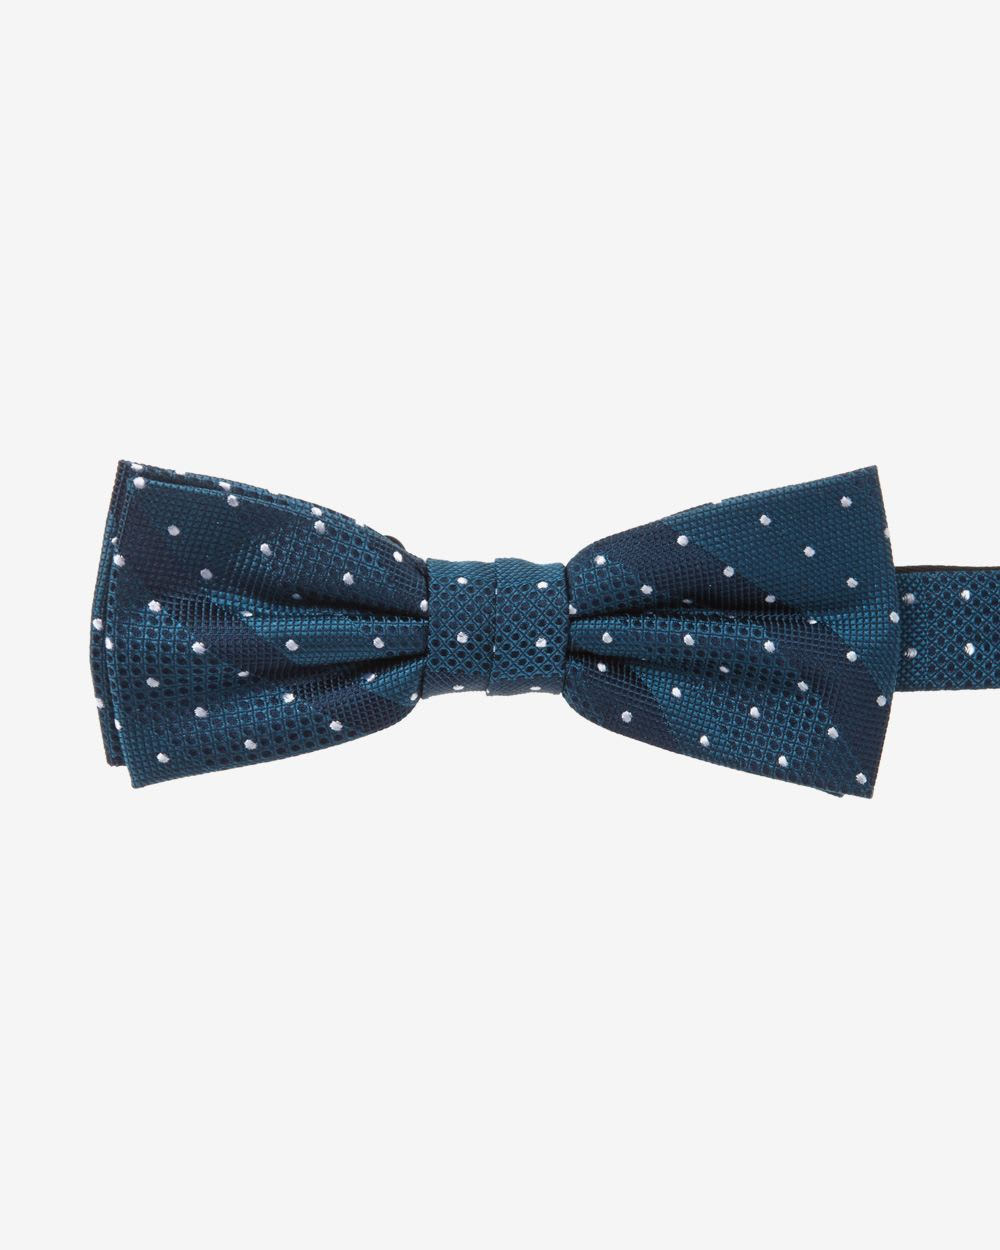 We've gathered several DIY tie tutorials and patterns from around the web - from bow ties to traditional neck ties to skinny mod ties, there's a tie for every kind of dad. tie sewing pattern, this is a great idea.